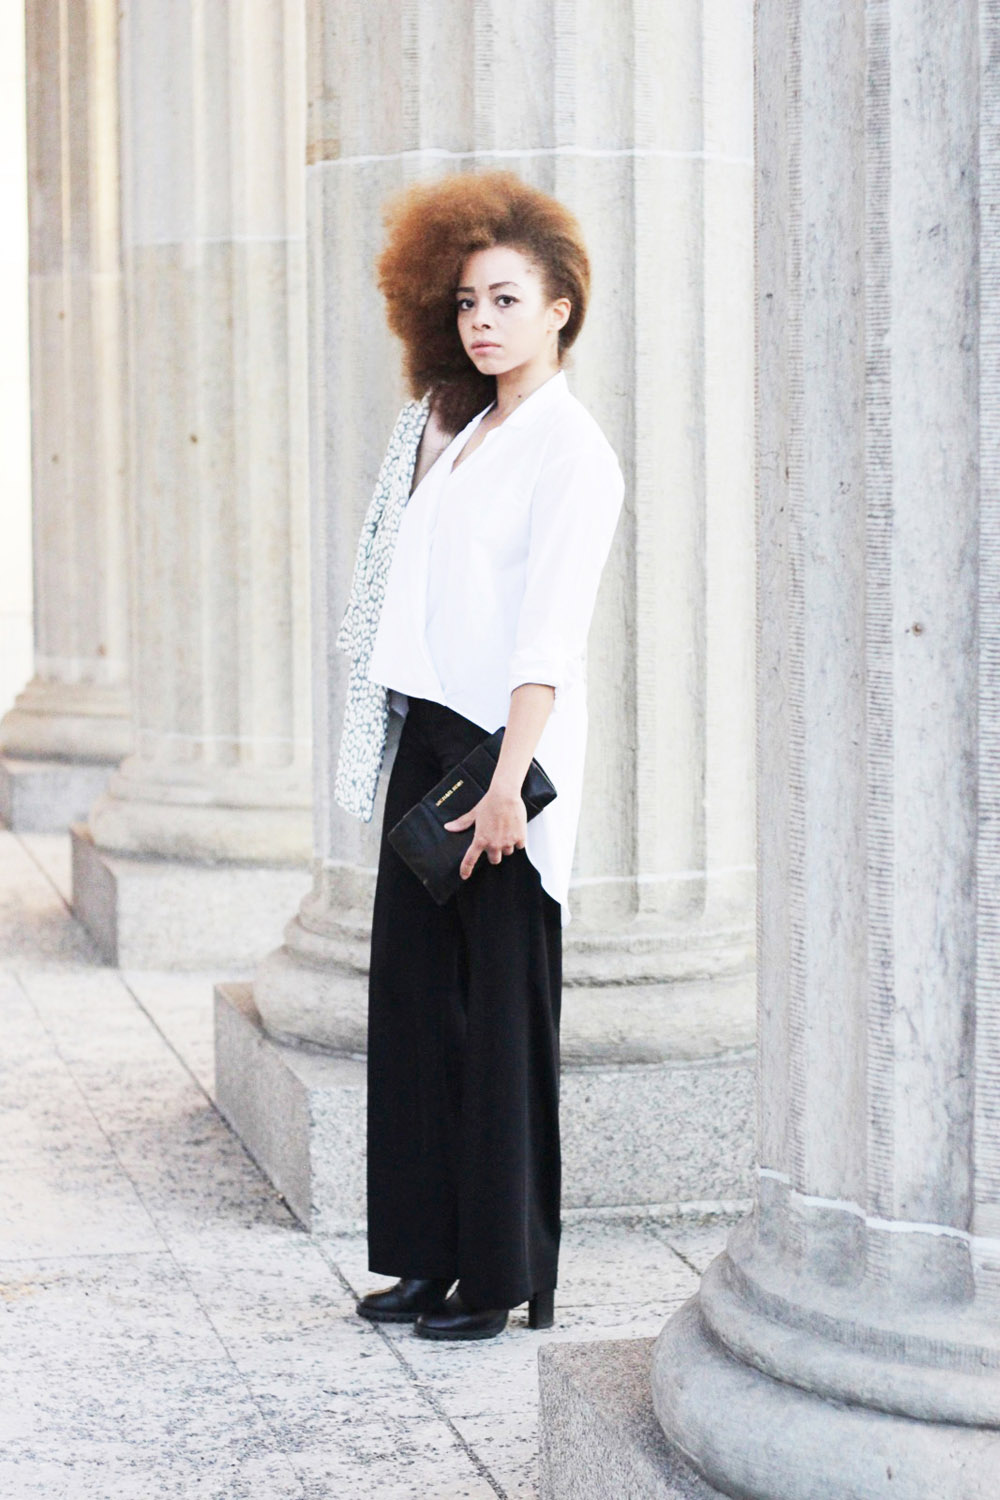 fatimayarie-afro-black-marlenepants-whiteblouse-clutch-img_1769